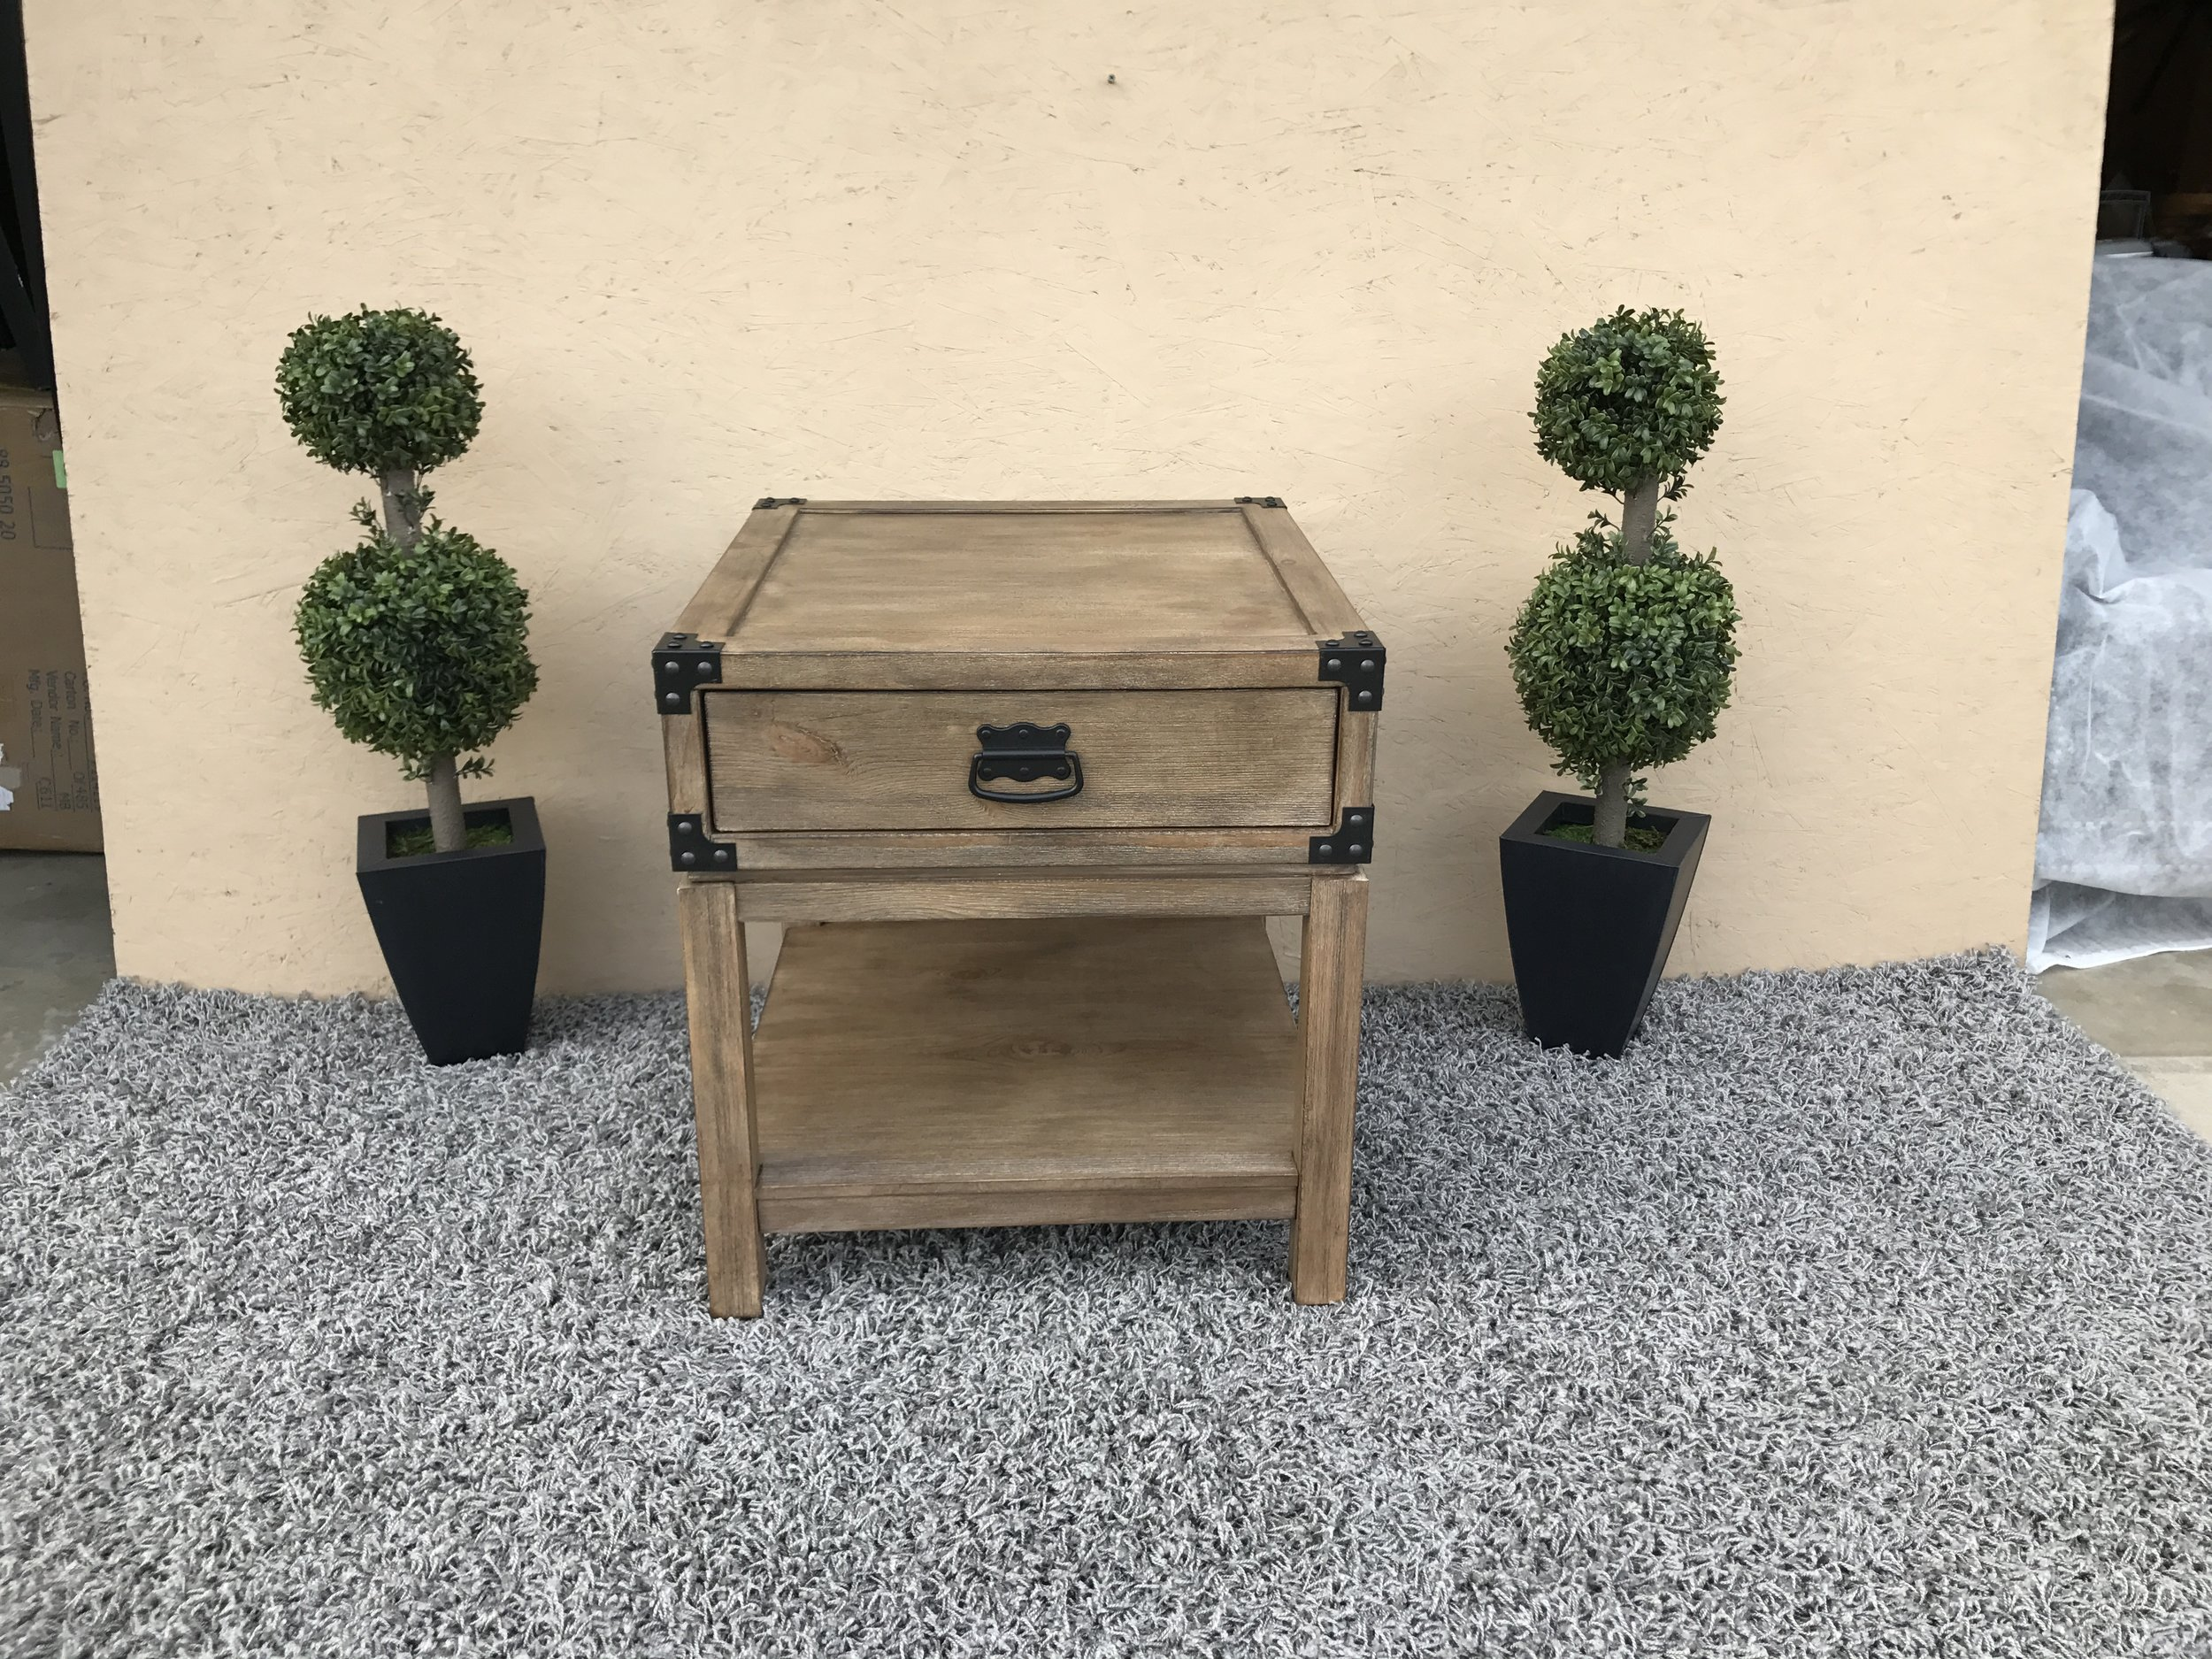 sold treasure trove accents carmel burnished natural finish trunk img accent end table ikea wooden storage bench small decorative cloths round glass coffee with gold base book